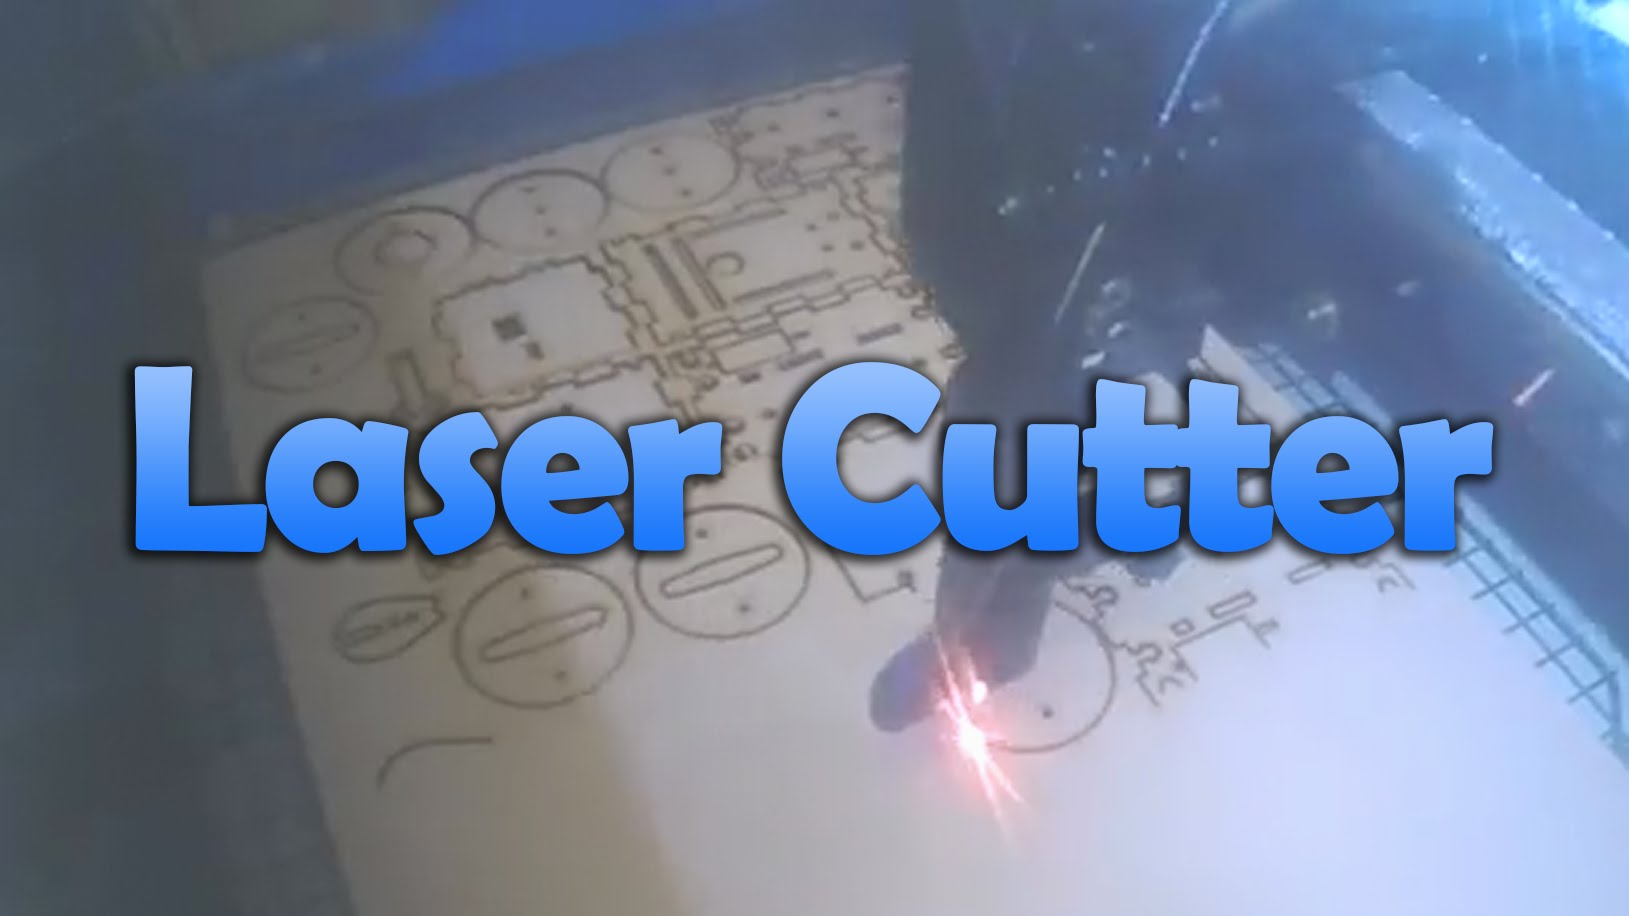 On YouTube: Introduction to the Laser Cutter